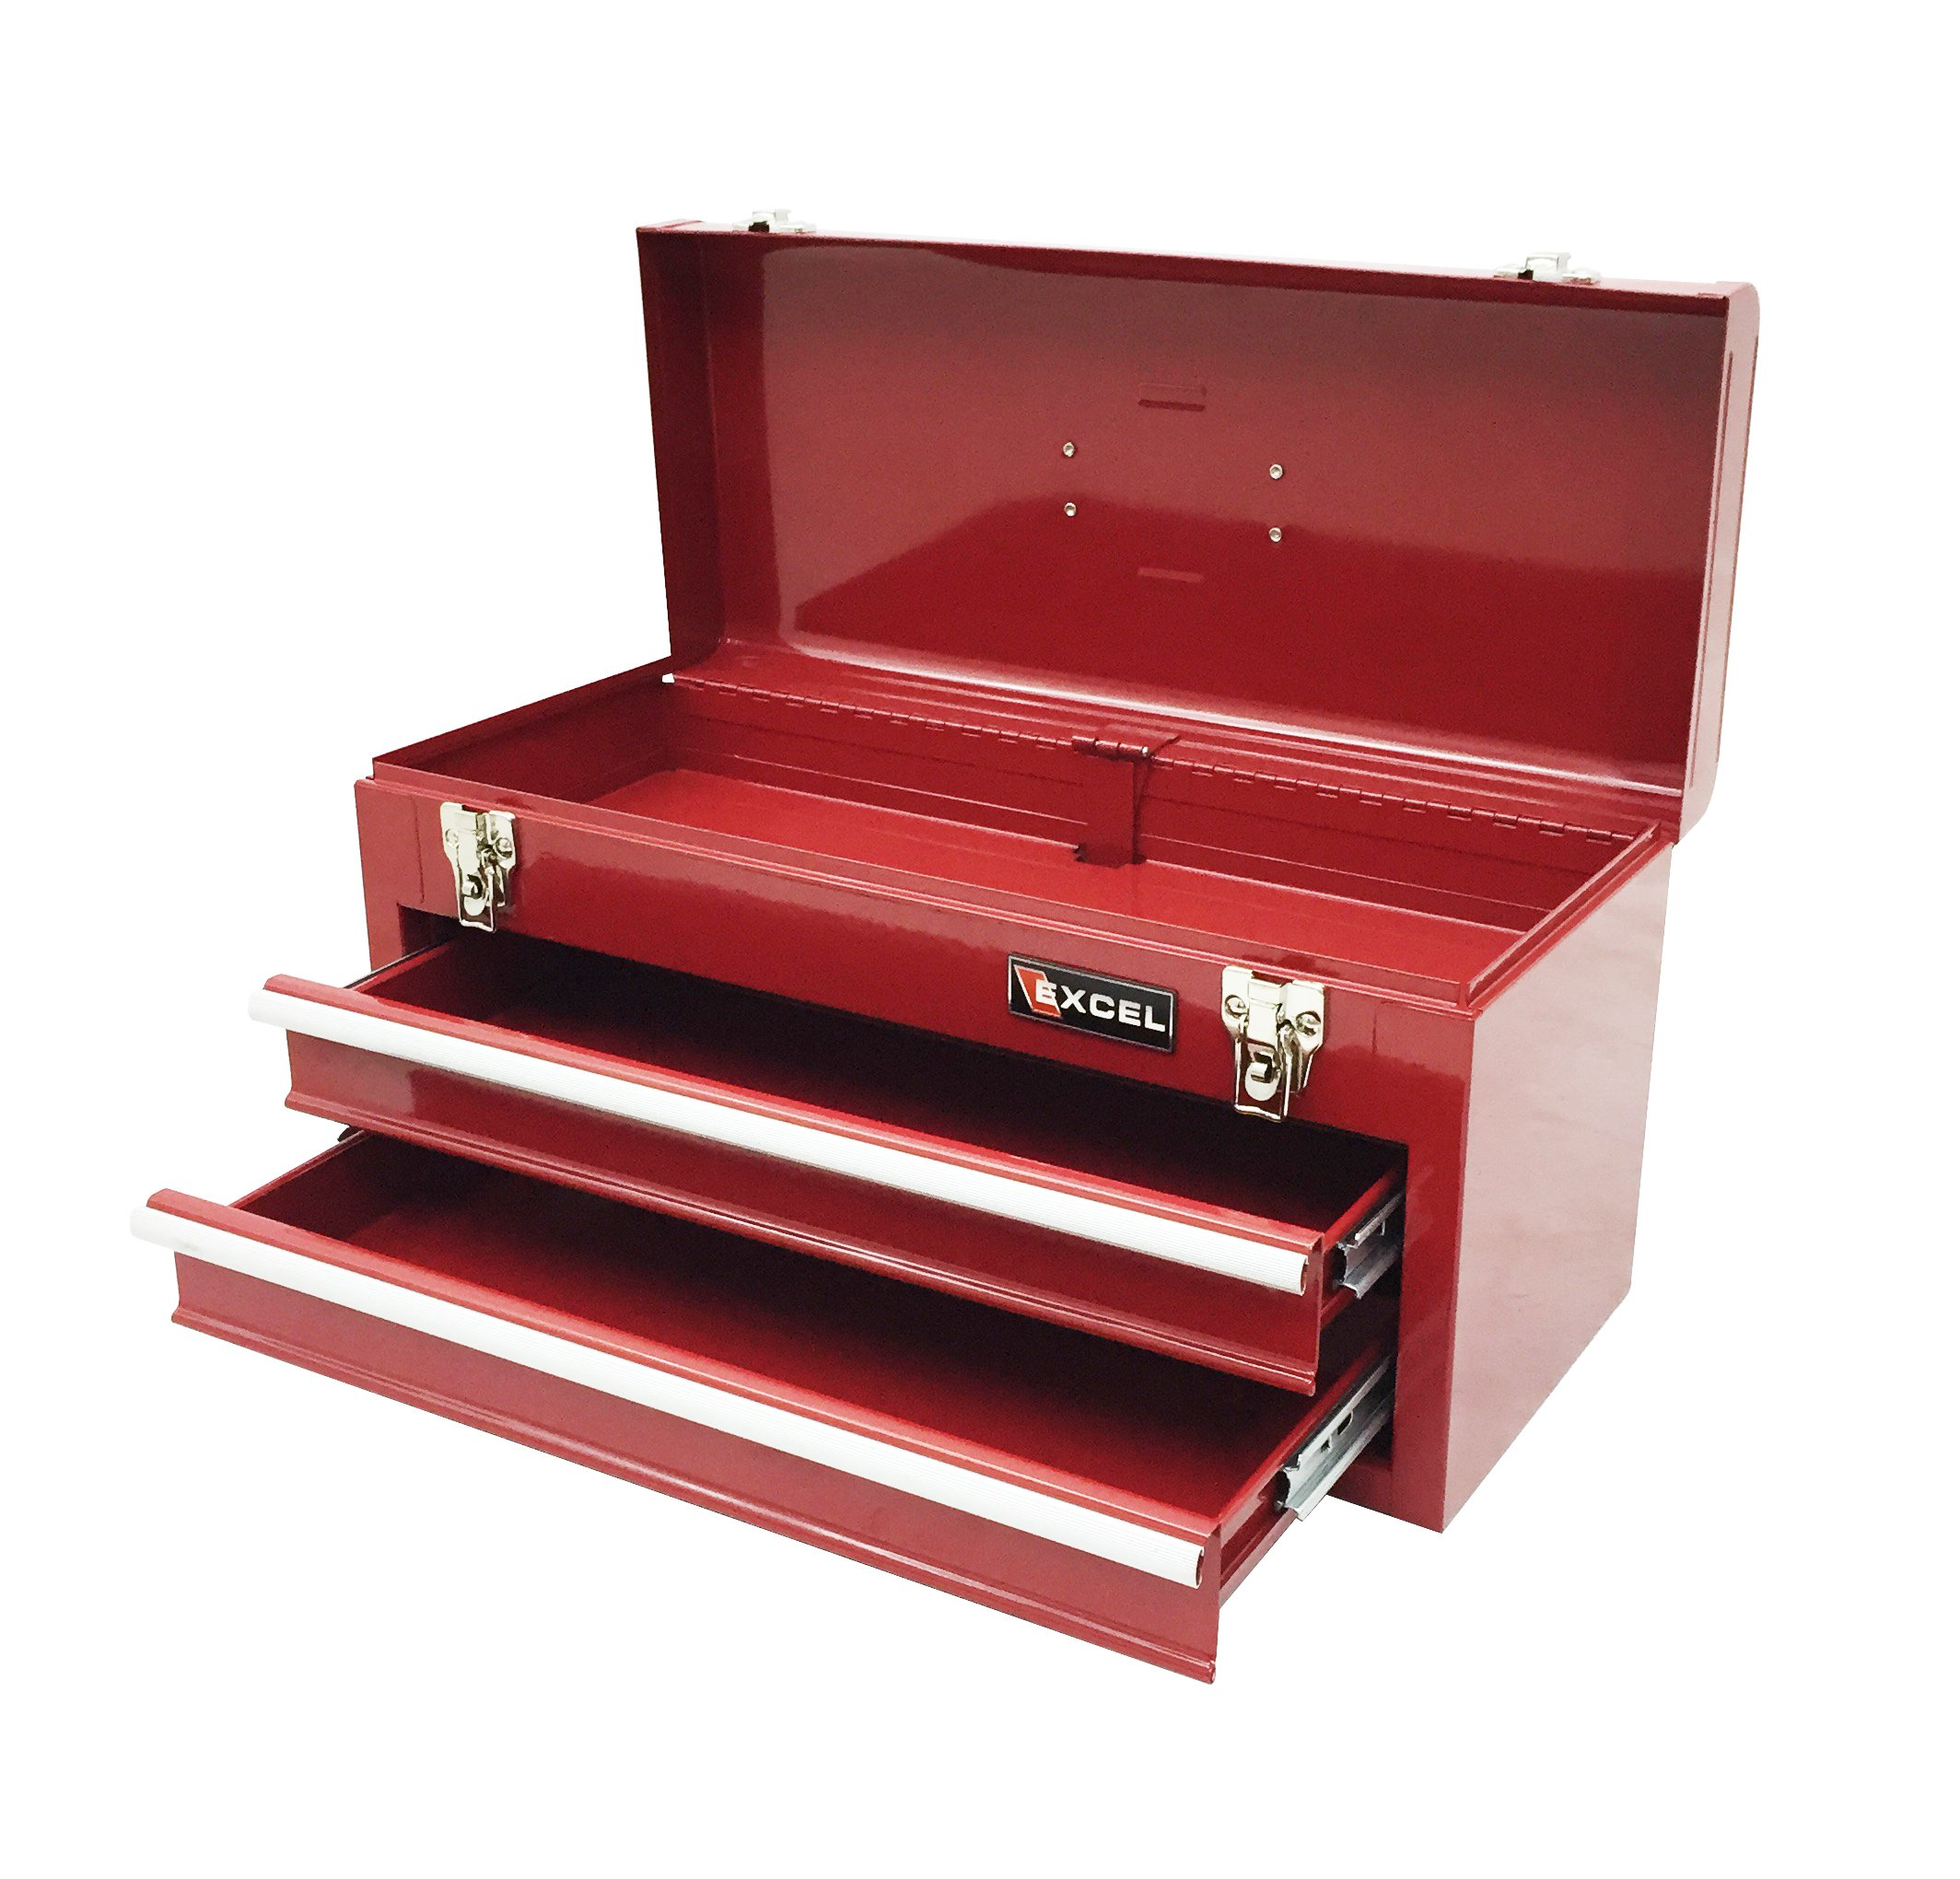 Excel TB132-Red 20-Inch Portable Steel Tool Box, Red